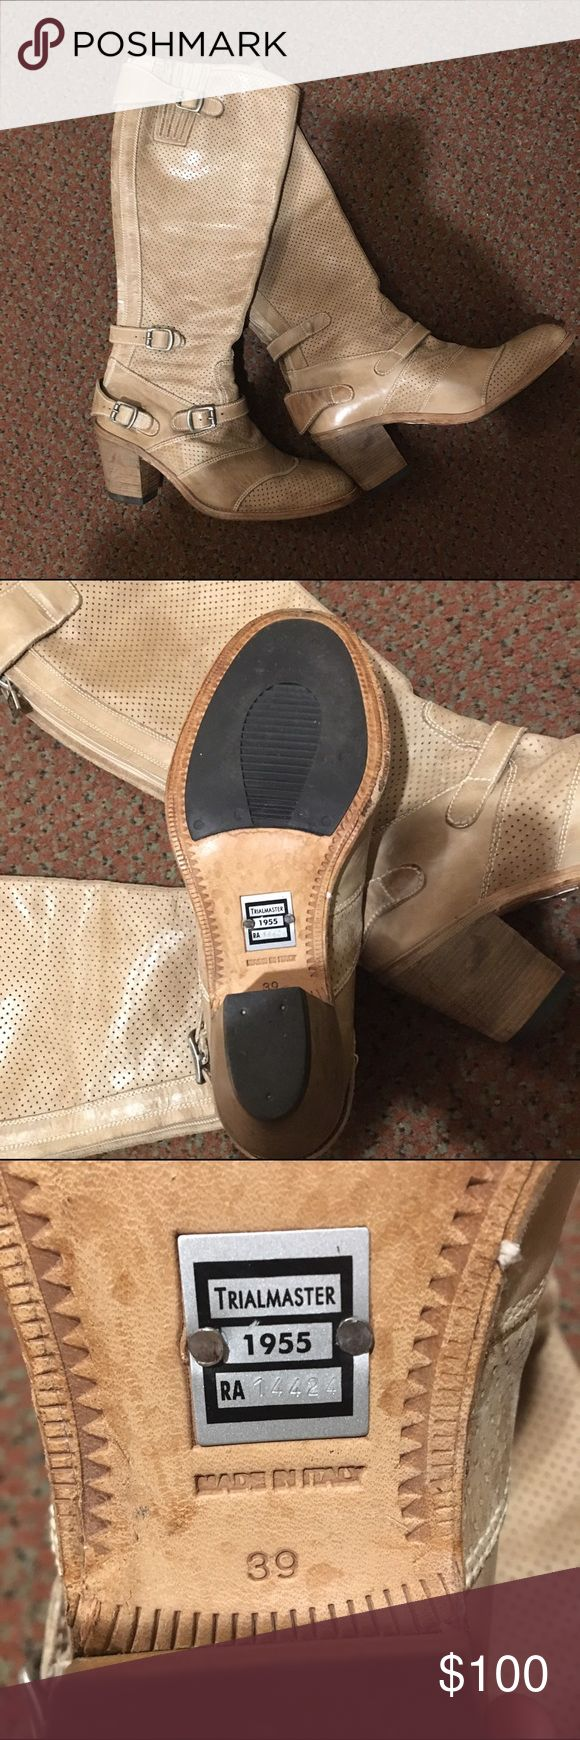 Belstaff Trailmaster Boots 1955 I am selling Belstaff boots. They are leather and very comfortable. I wore them a couple of times and got plenty of compliments. I am simply selling them because I got a new pair of boots. Belstaff Shoes Heeled Boots